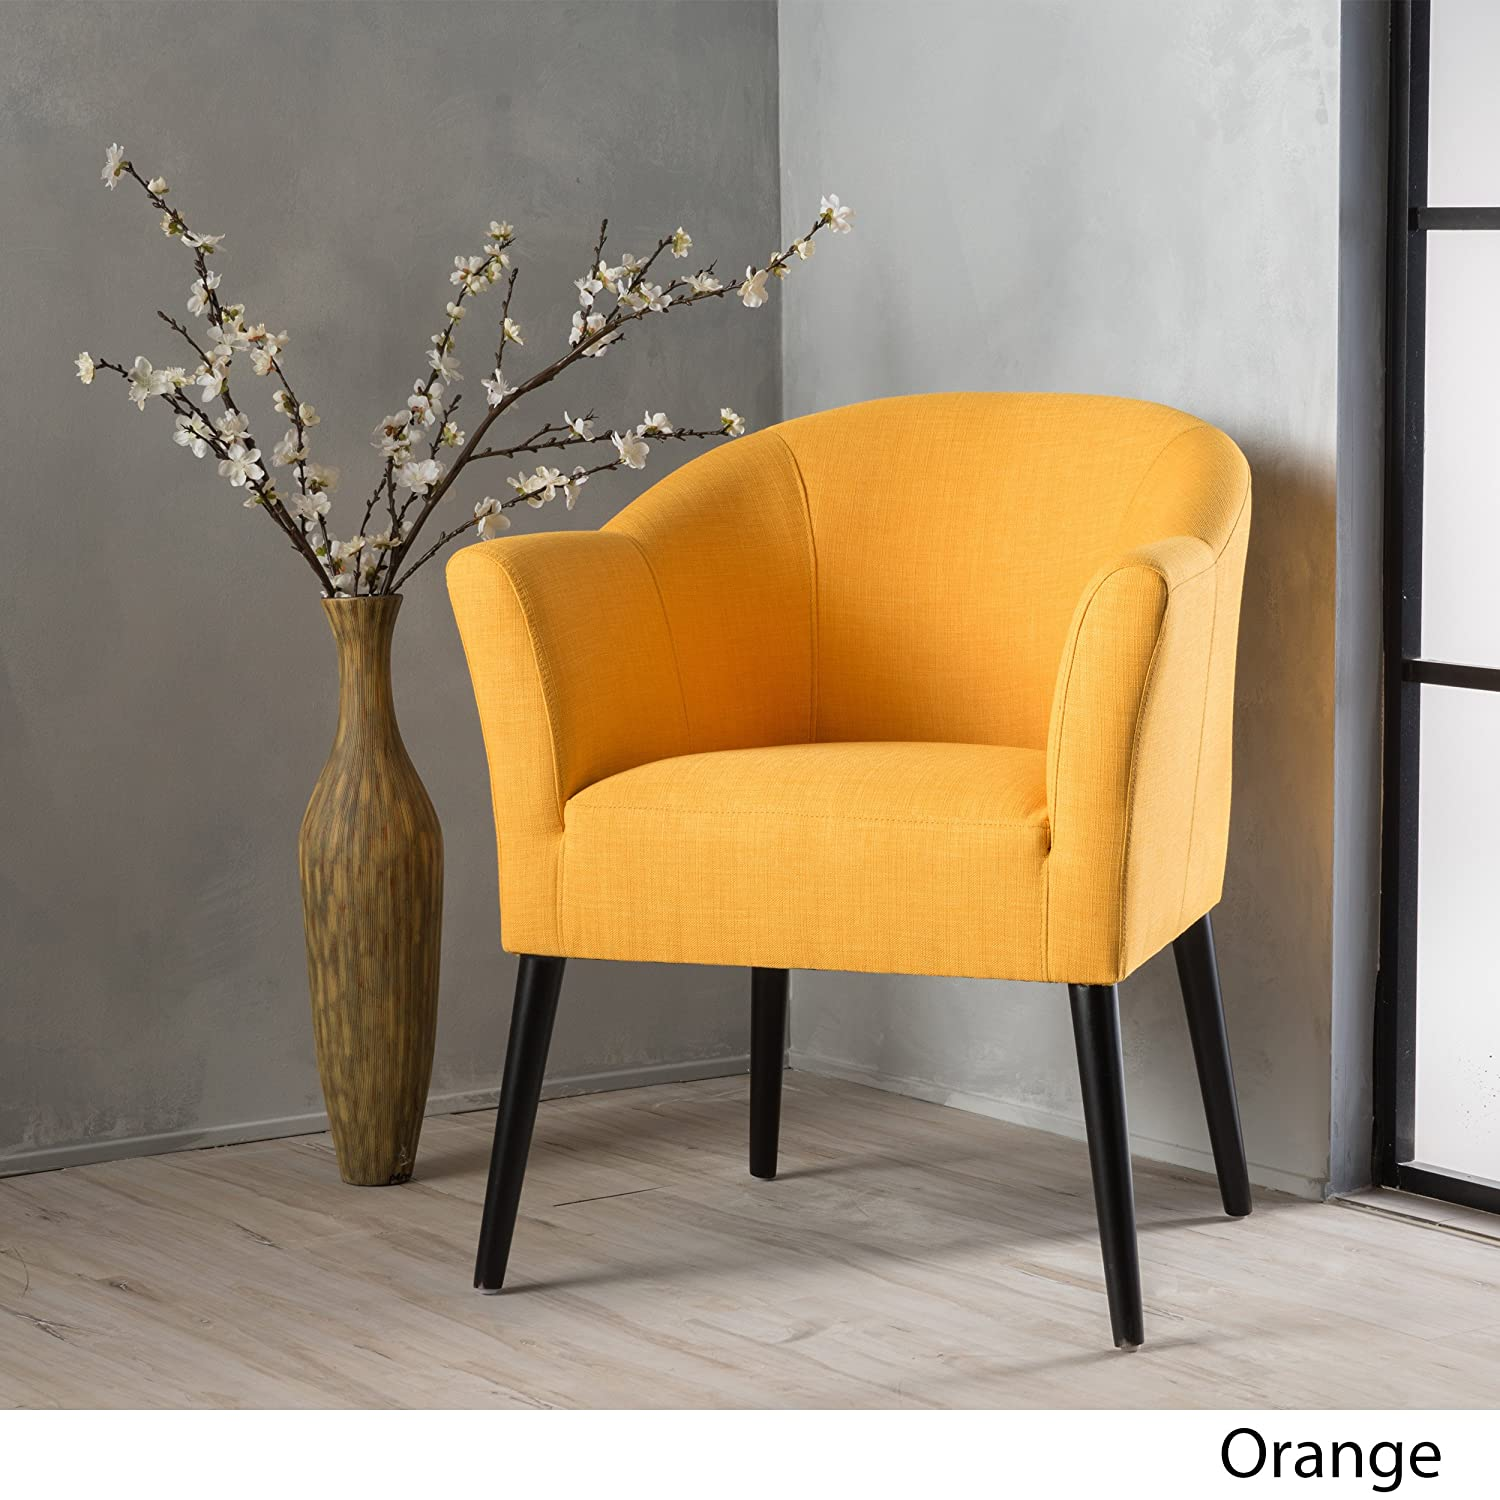 Charmaine | Fabric Accent Chair | in Orange